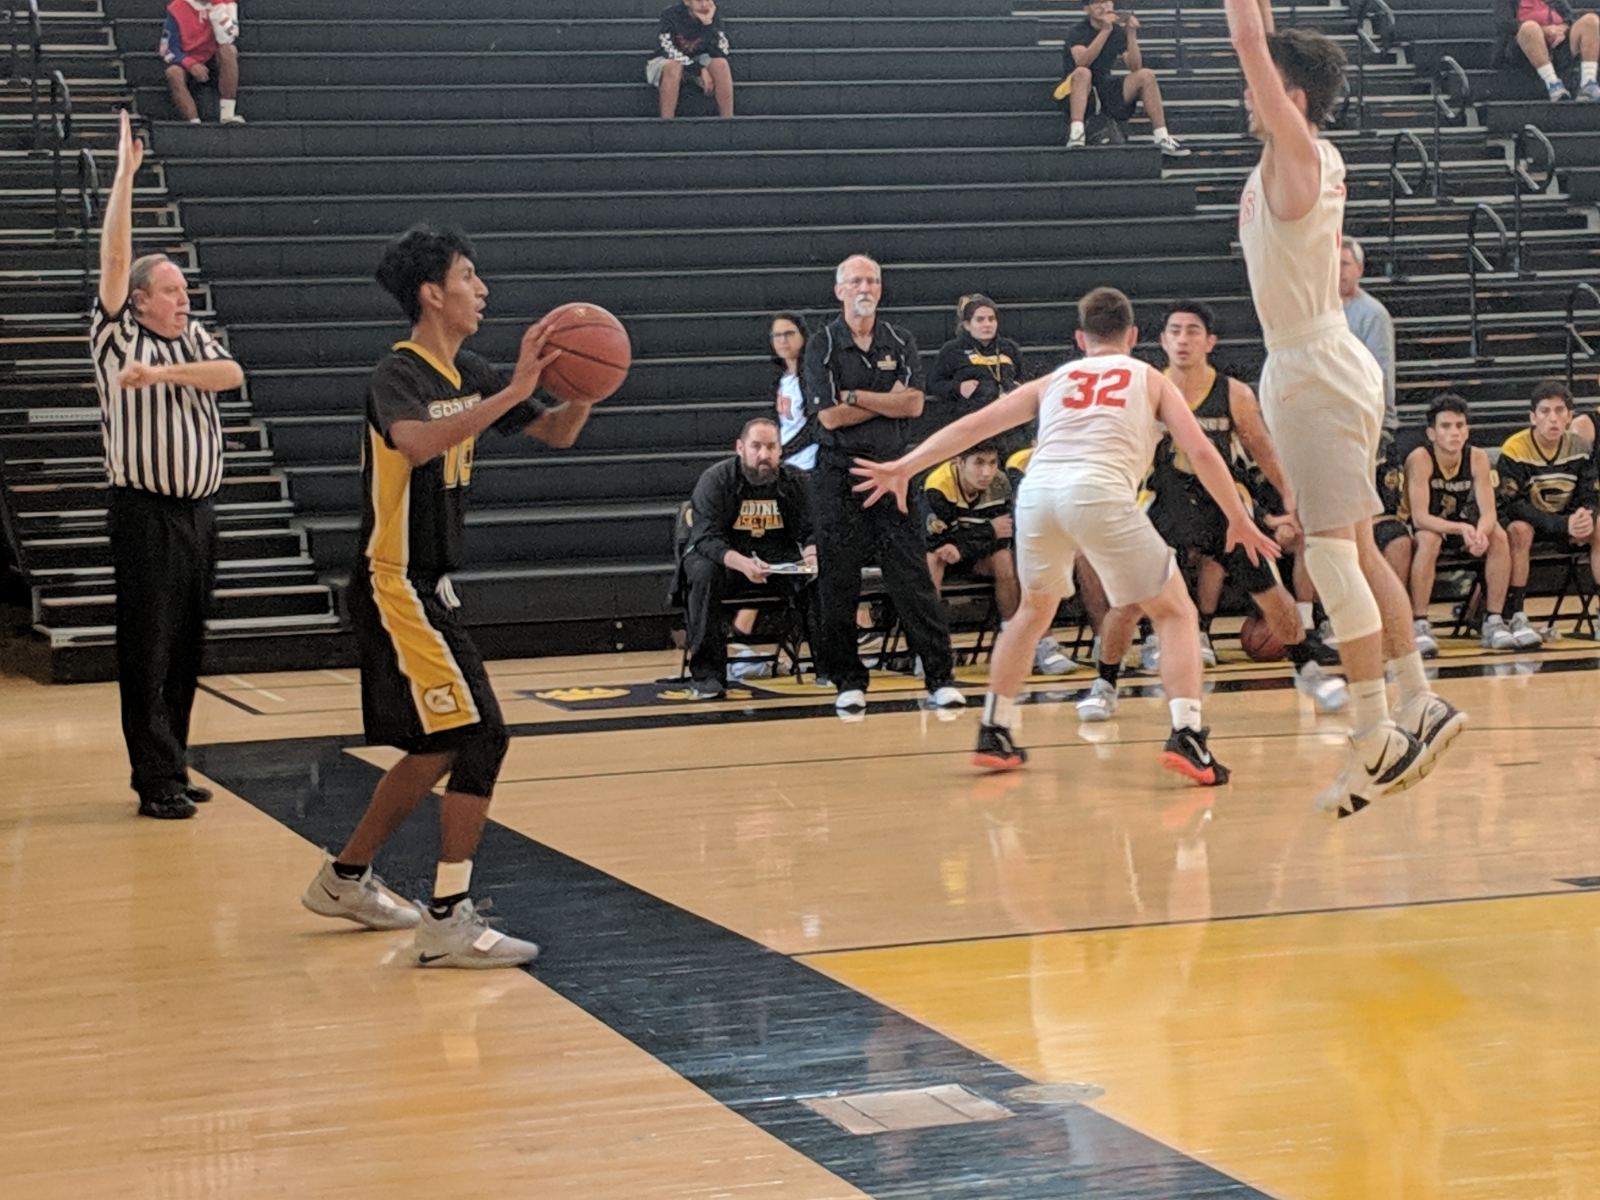 Grizzly Invitational 2018 Boys Basketball Tournament A Success!